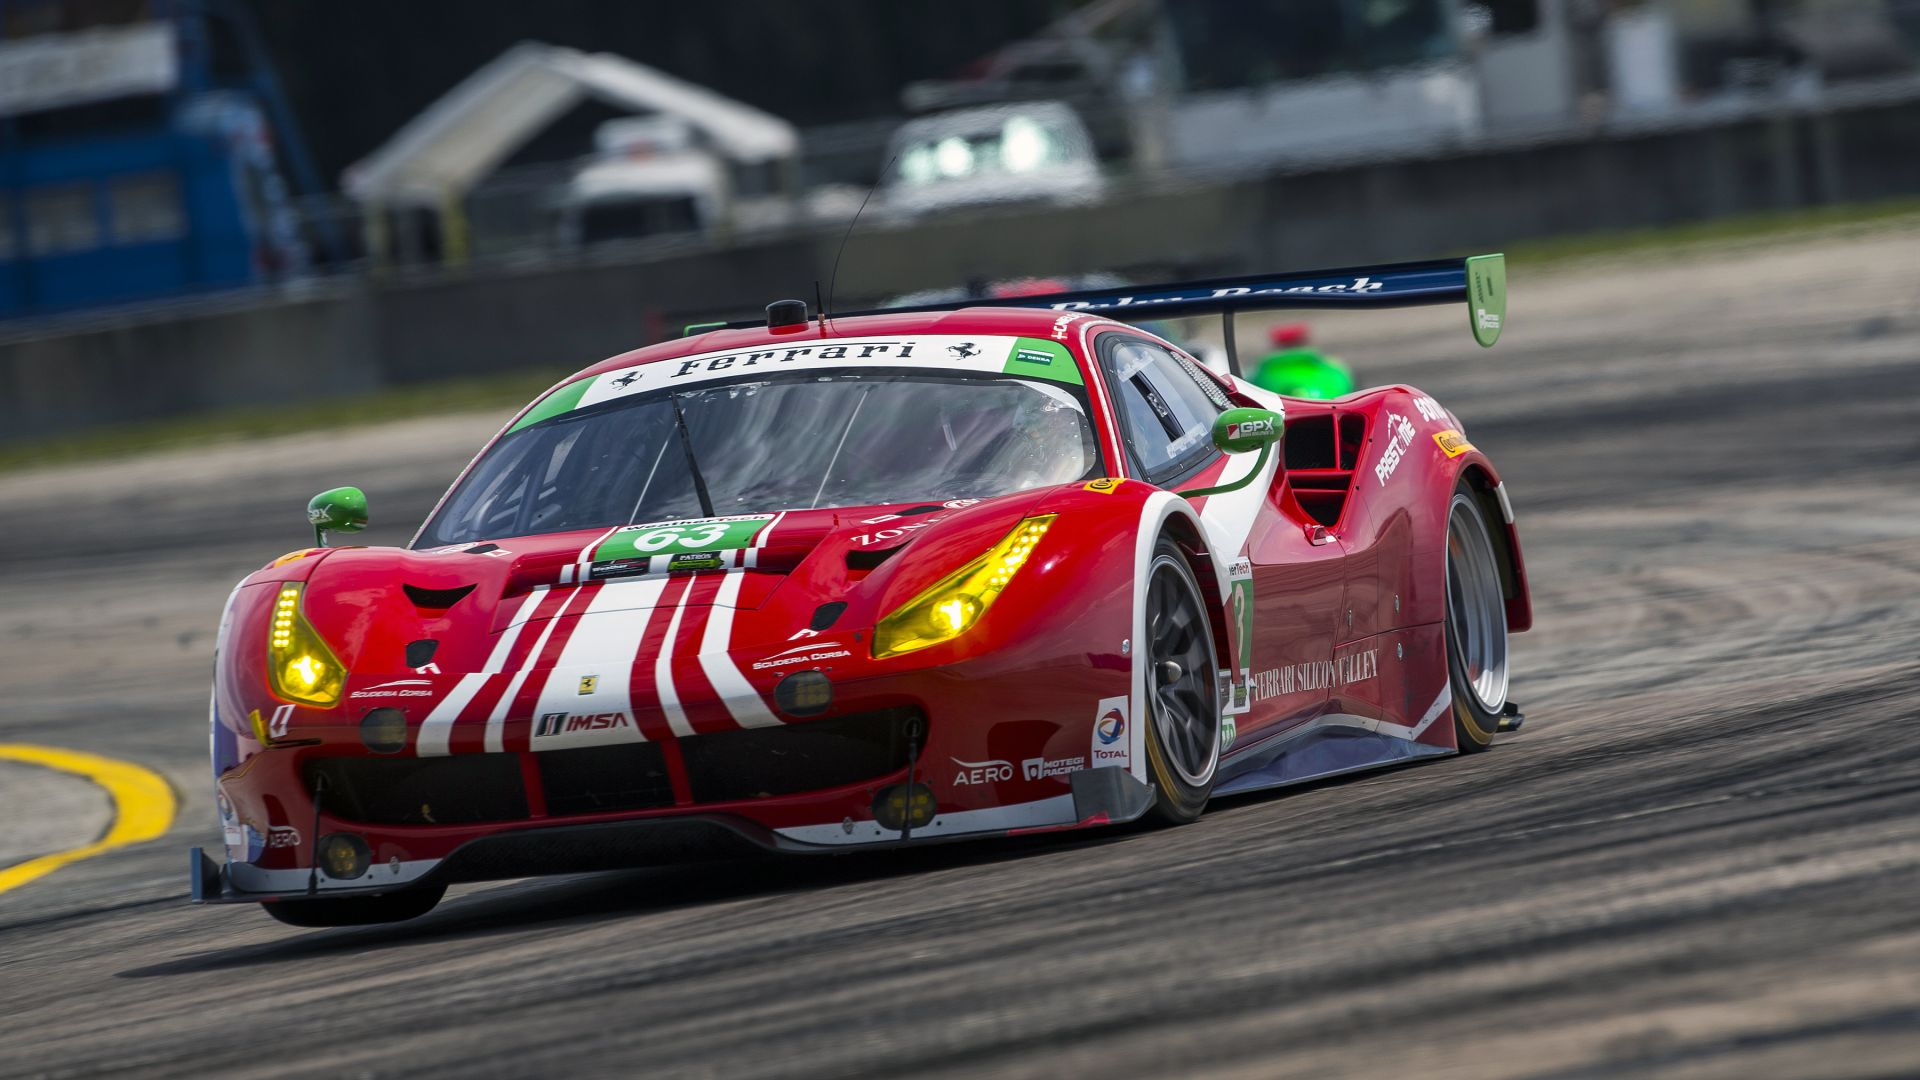 Wallpaper Ferrari 488 Gte Sport Cars Race Cars Red